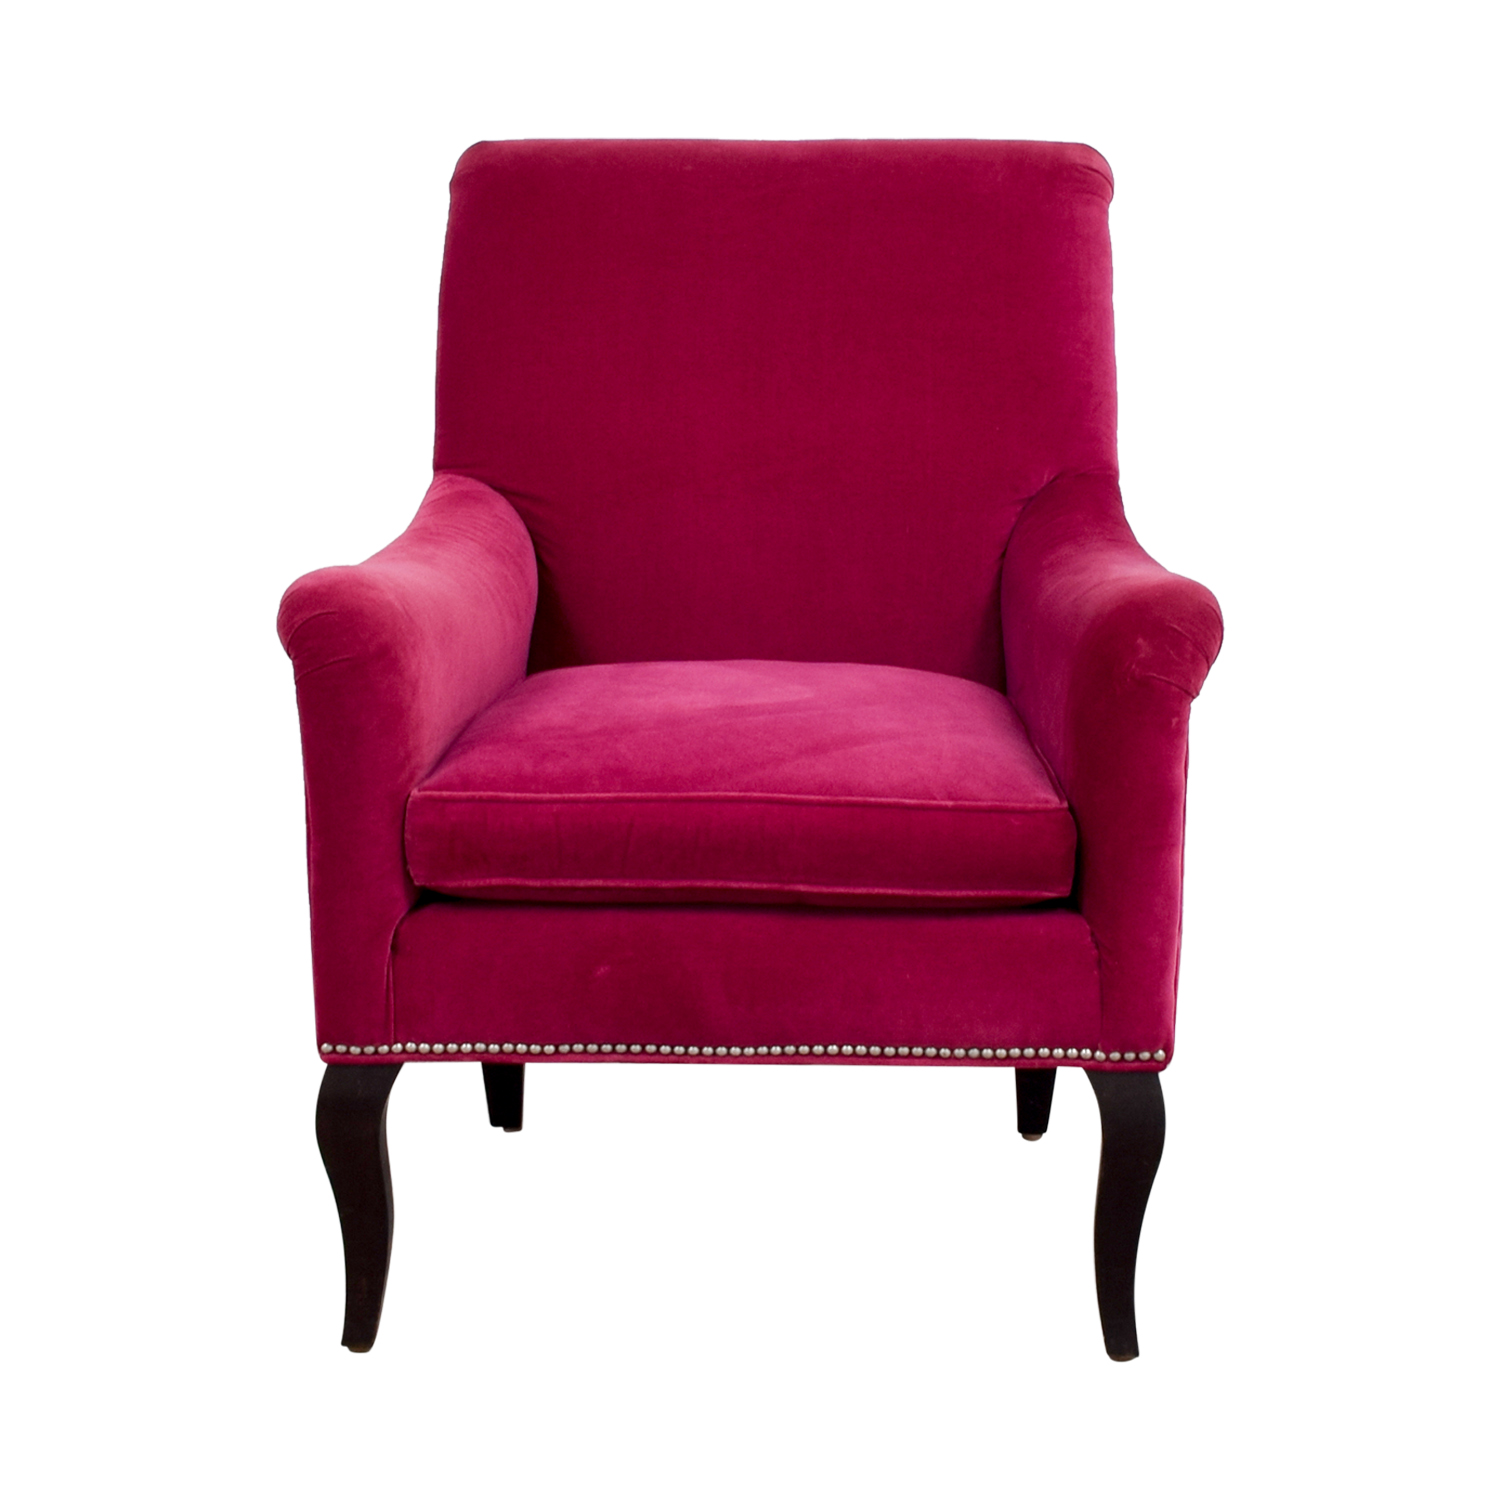 velvet armchair pink modern recliner chairs canada 87 off crate and barrel tux